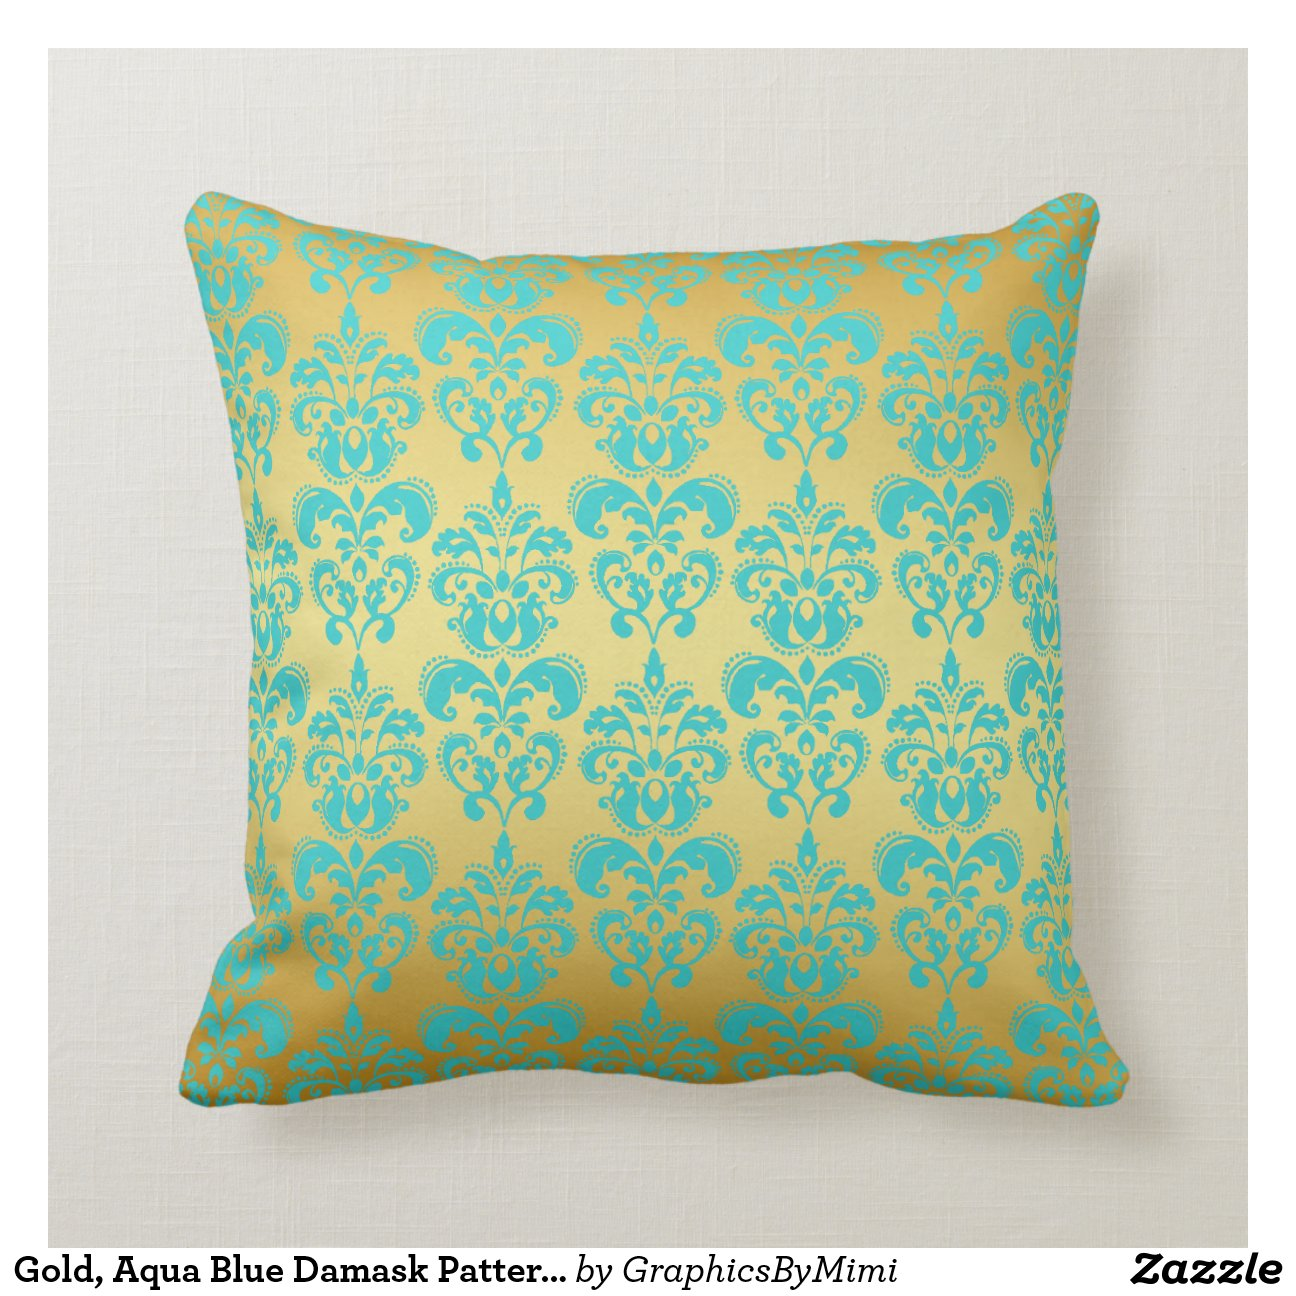 Throw Pillows Aqua Blue : Gold, Aqua Blue Damask Pattern 2 Throw Pillows Zazzle